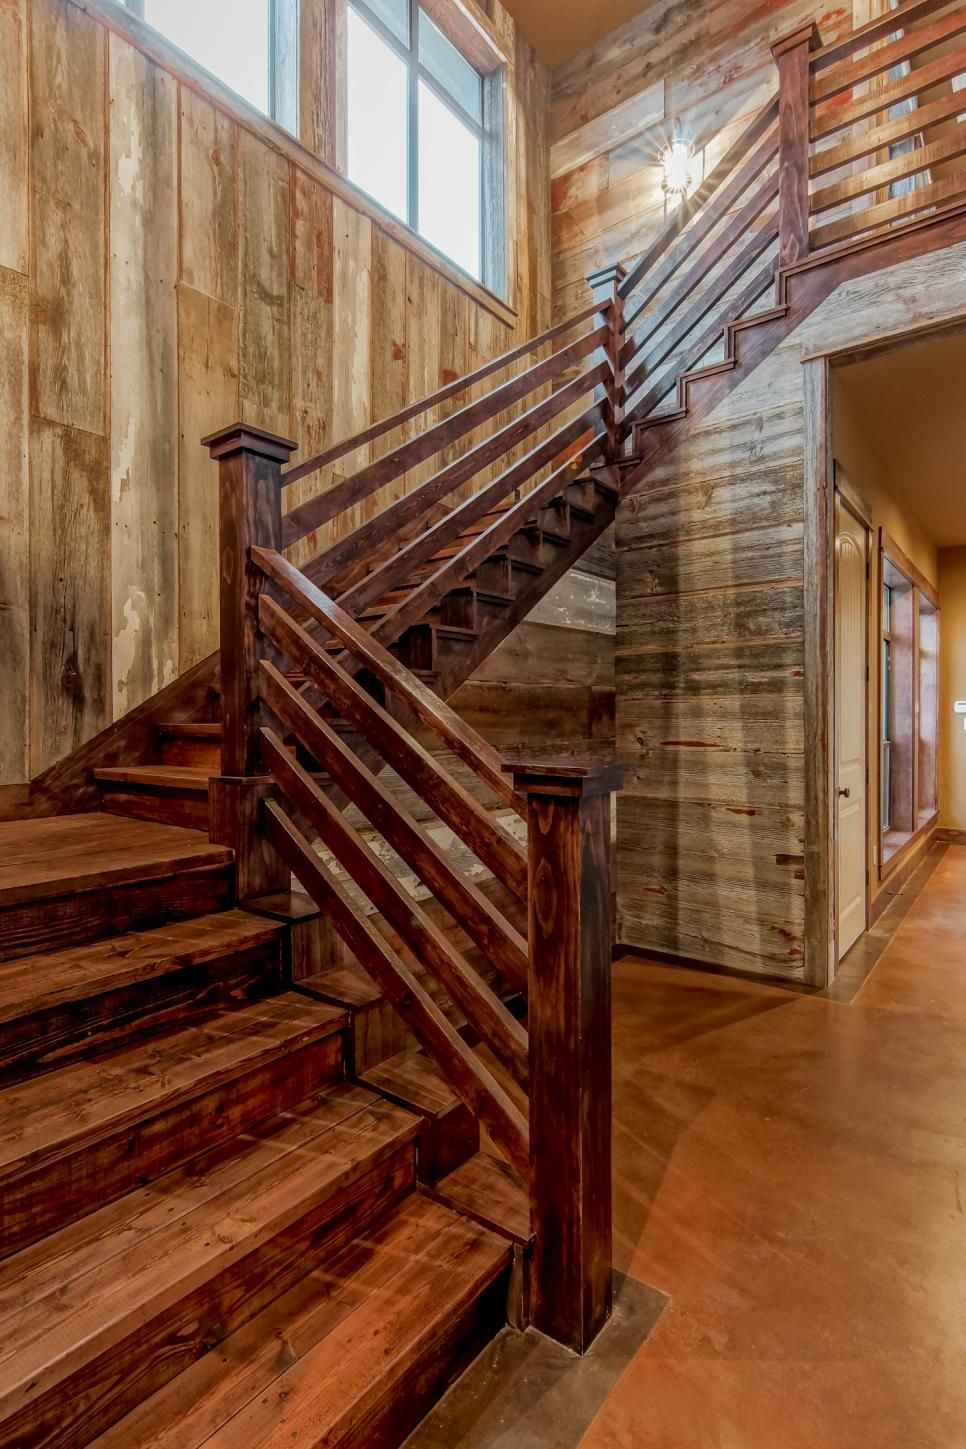 Rustic Stairs With Natural Wood Walls And Stained Wood   Timber Handrails For Stairs